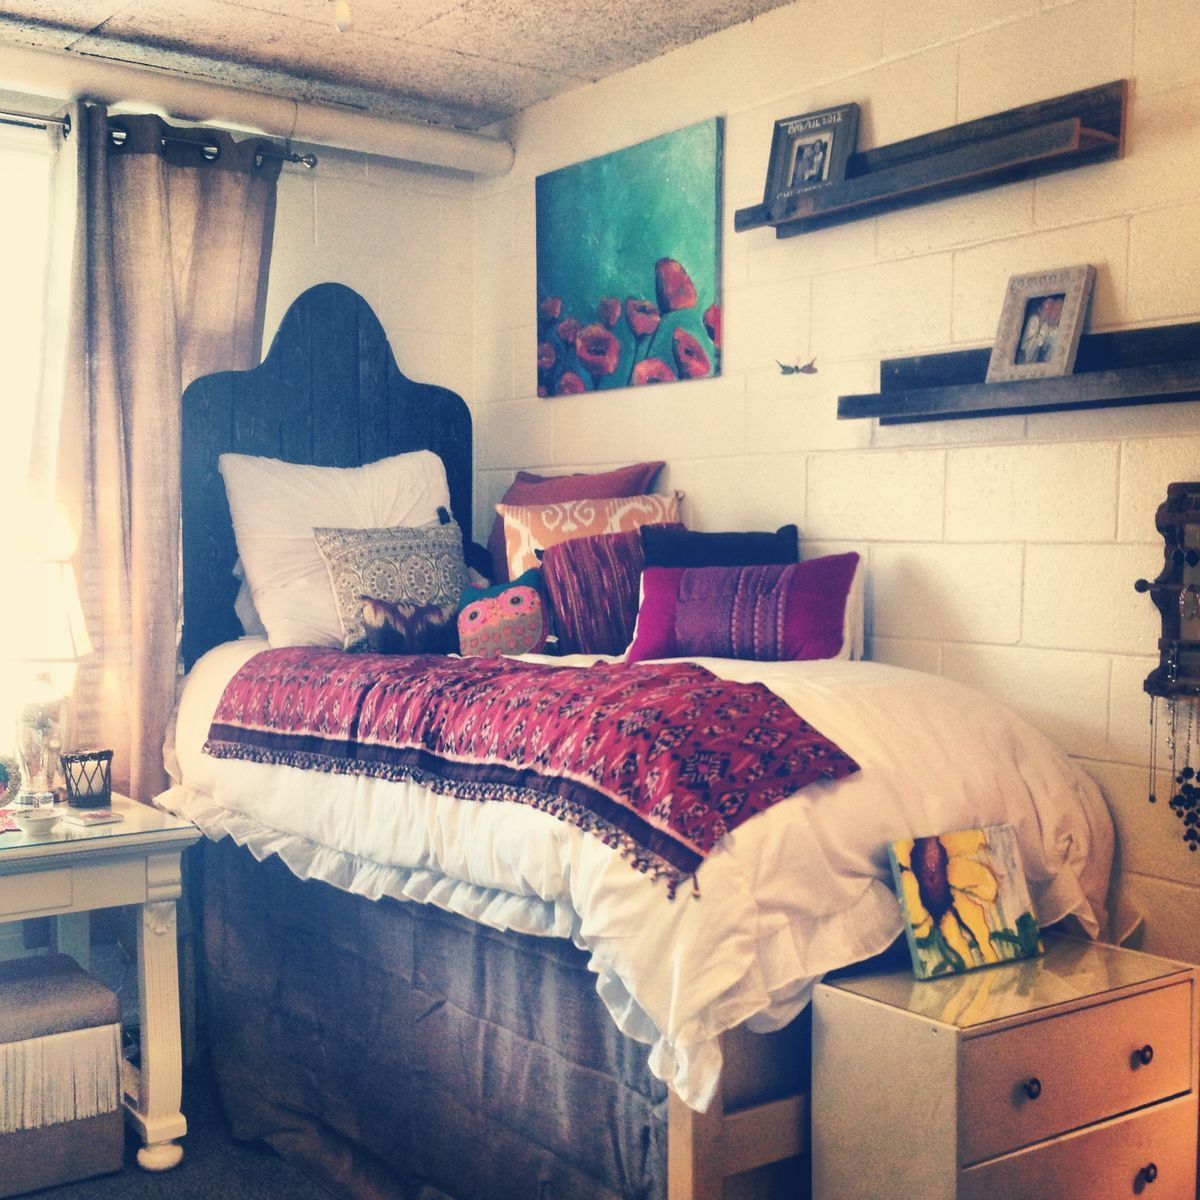 Dorm Décor The Simple Look Dorm Room Dorm And Room Ideas - 4 ideas for a more stylish college dorm